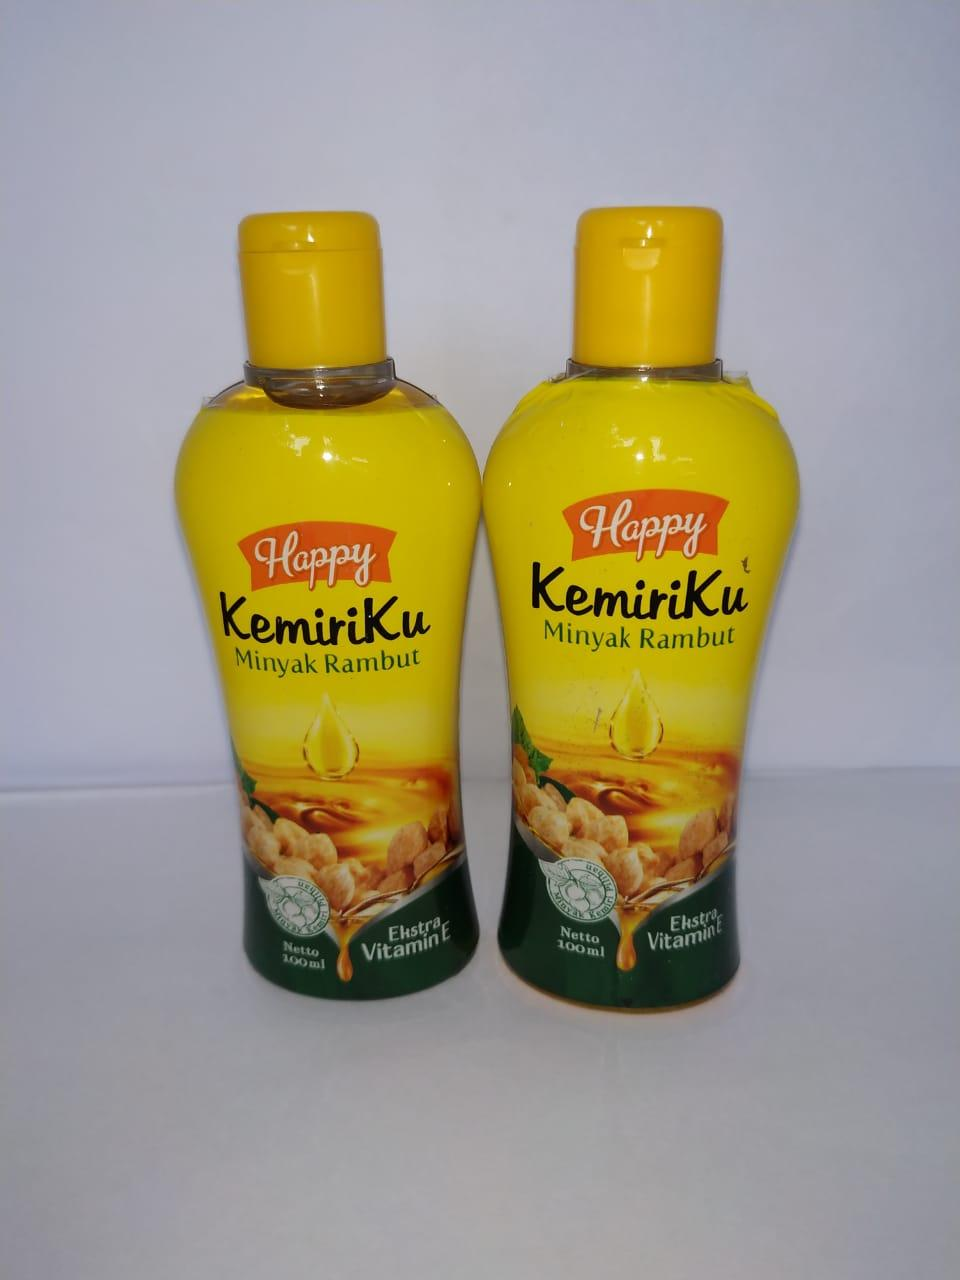 2 Pcs Minyak Rambut Kemiri Happy Kemiriku By Rendra & Reyhan.